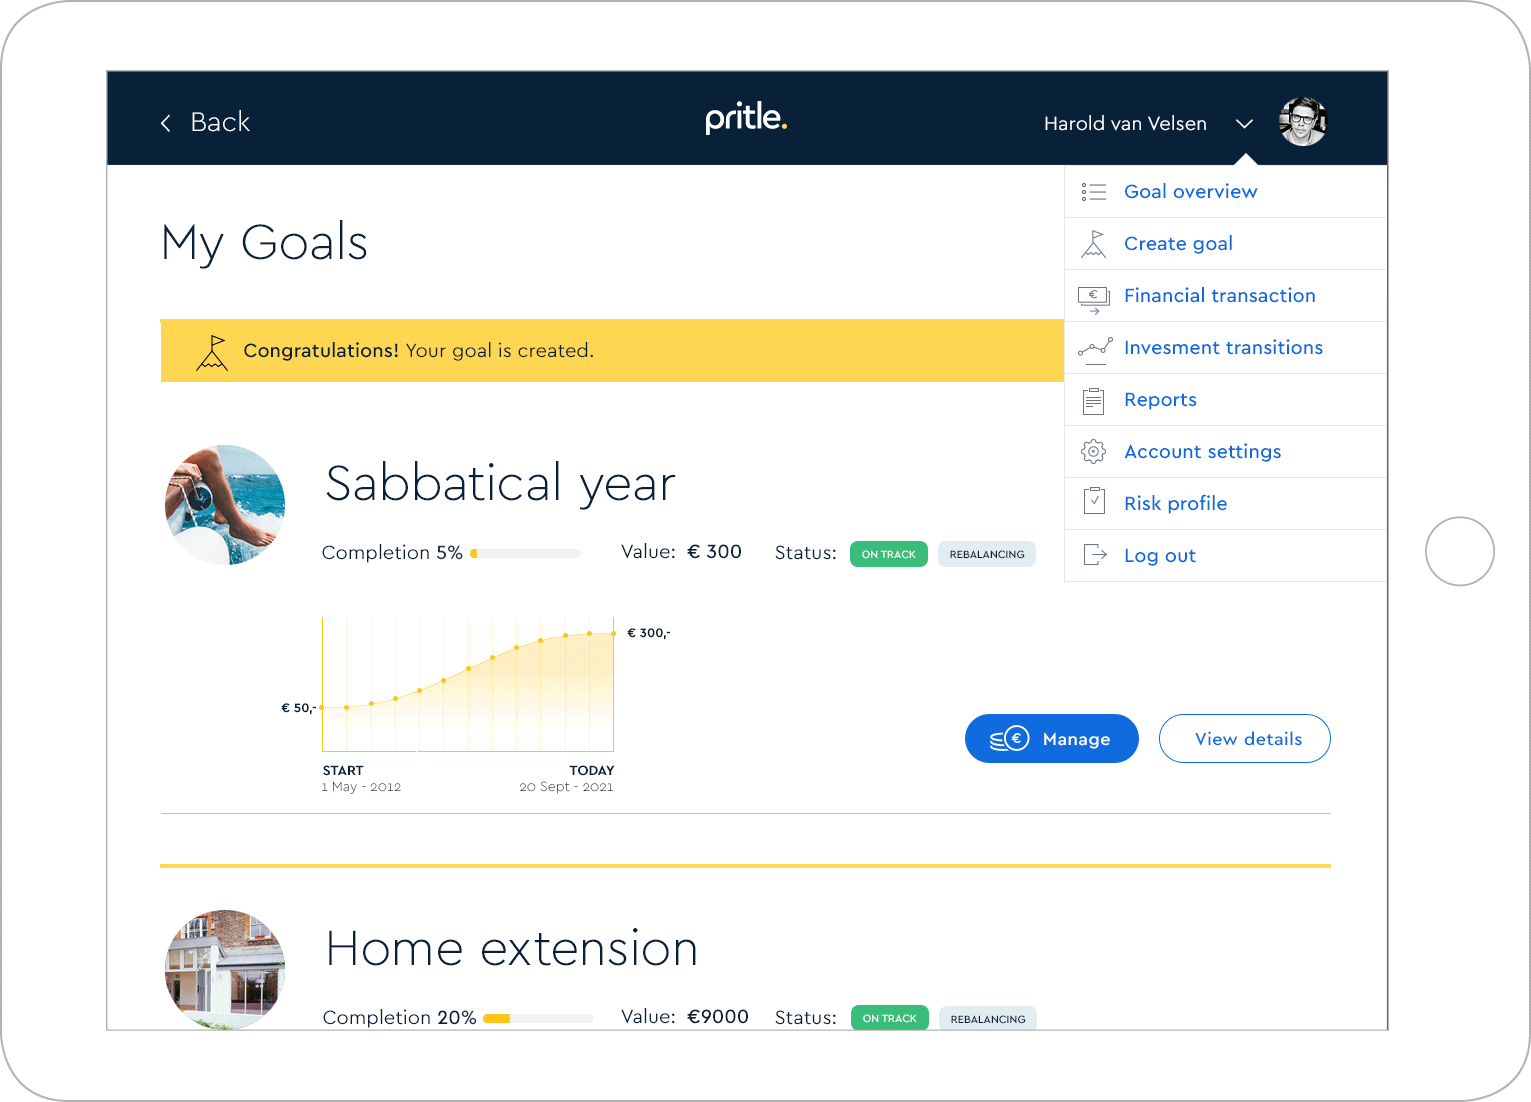 Pritle solution user interface